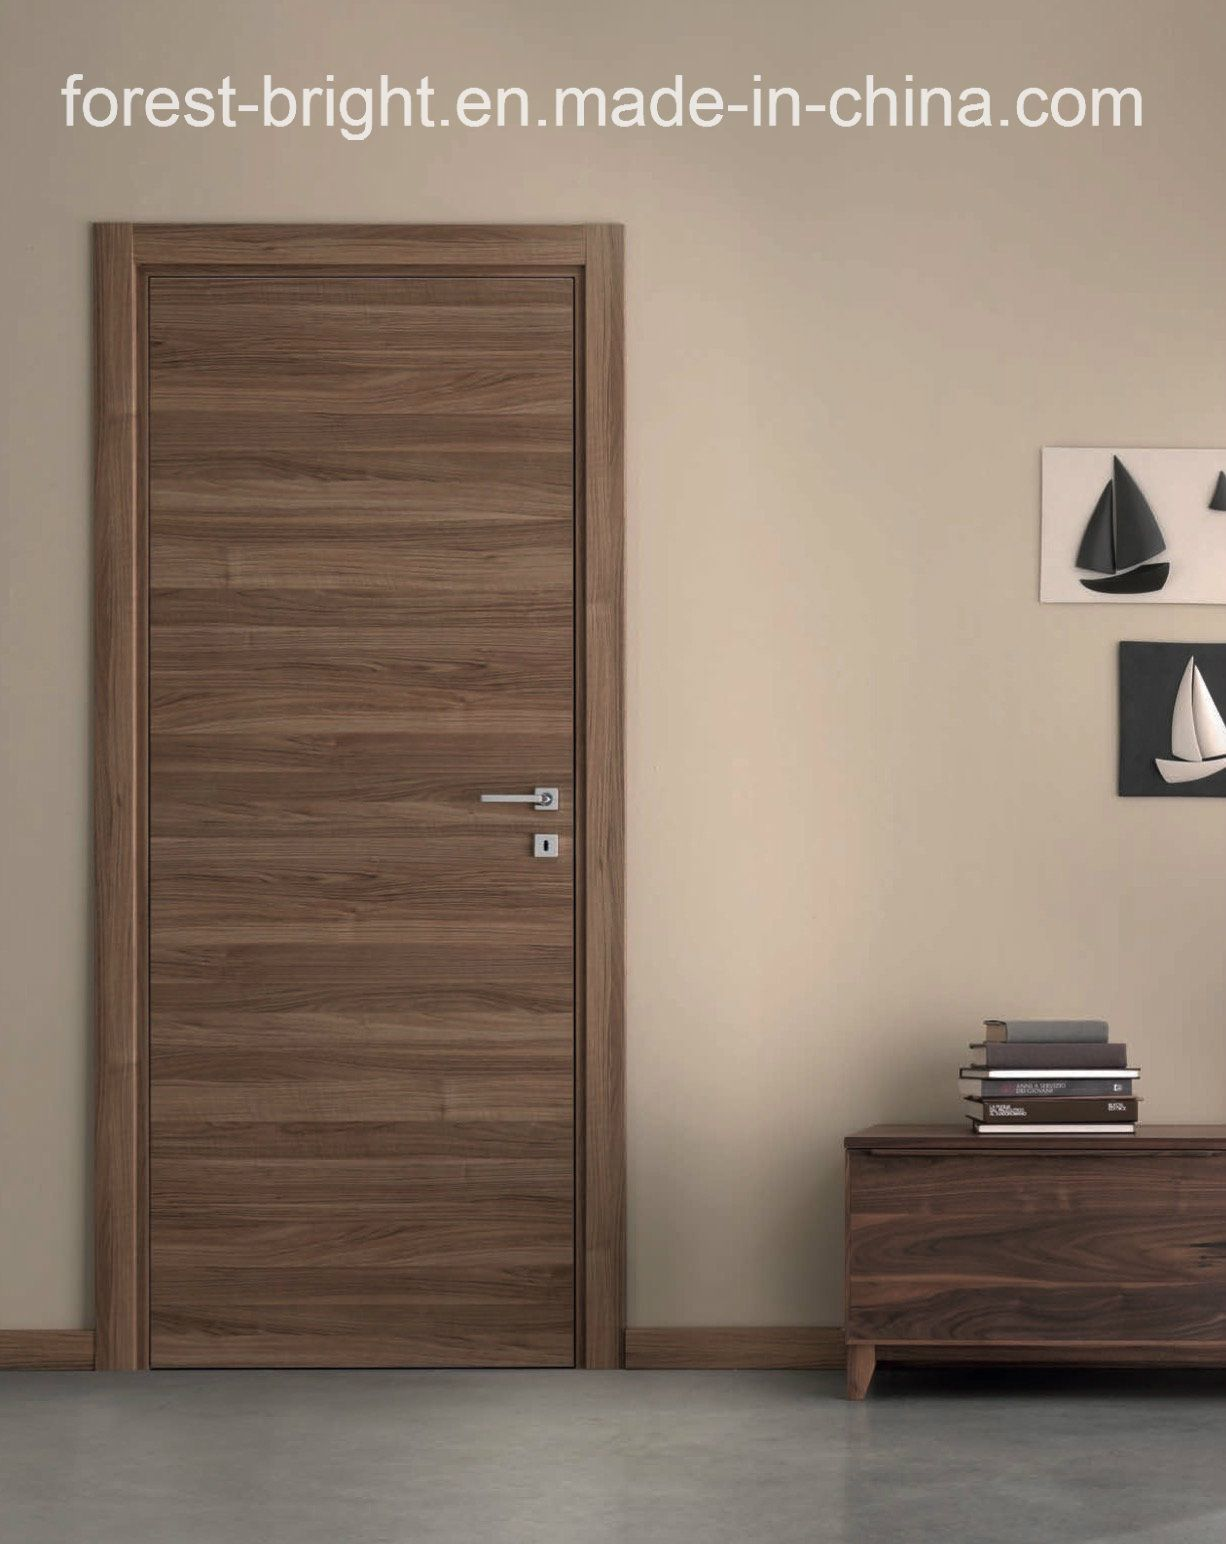 Living Room Door Living Room Door Are You Thinking About Replacing The Doors In Your House Here Are Some Doors Interior Door Design Interior Door Design Wood